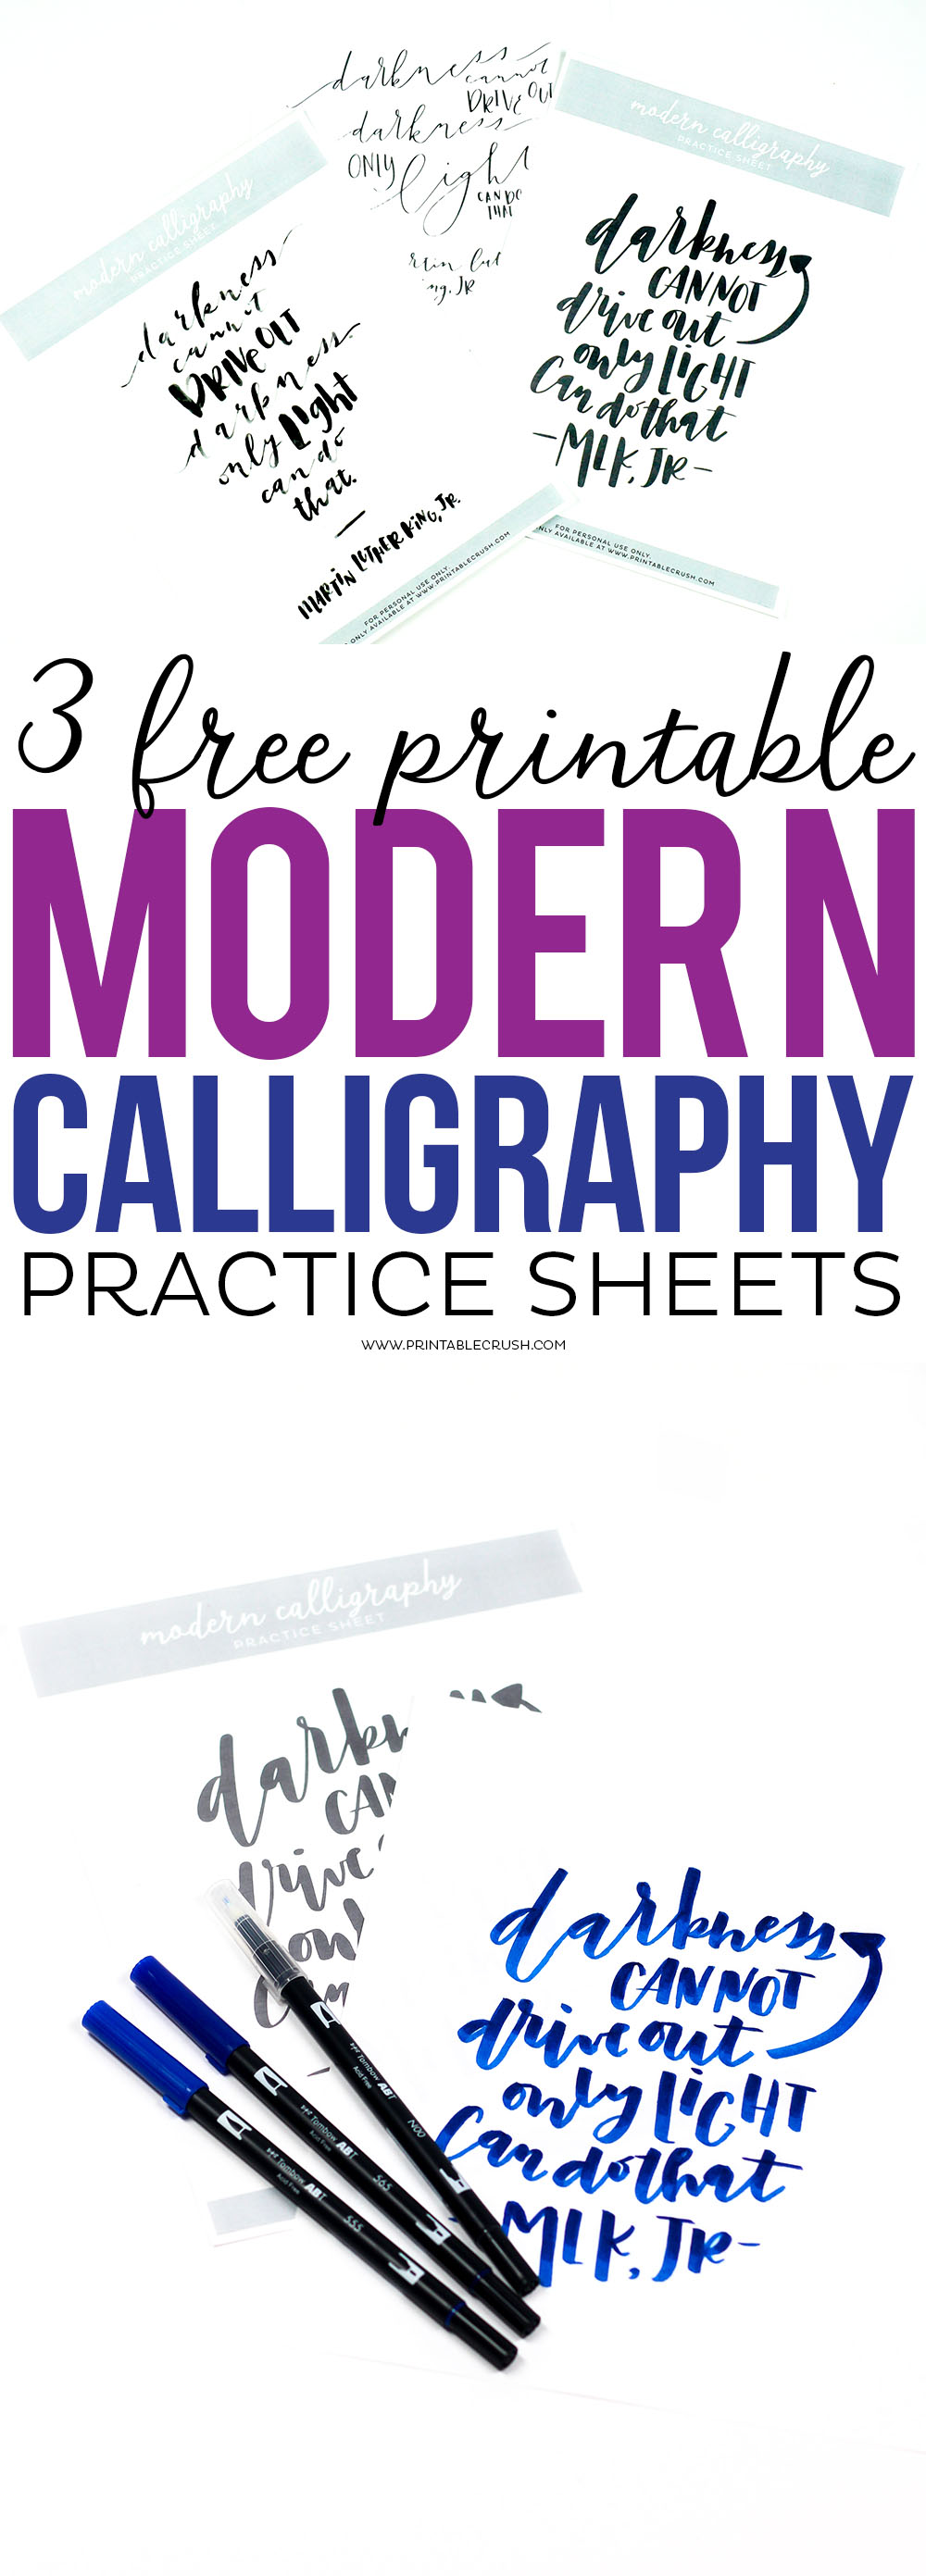 image relating to Printable Calligraphy Practice Sheets identify 3 No cost Printable Ground breaking Calligraphy Educate Sheets